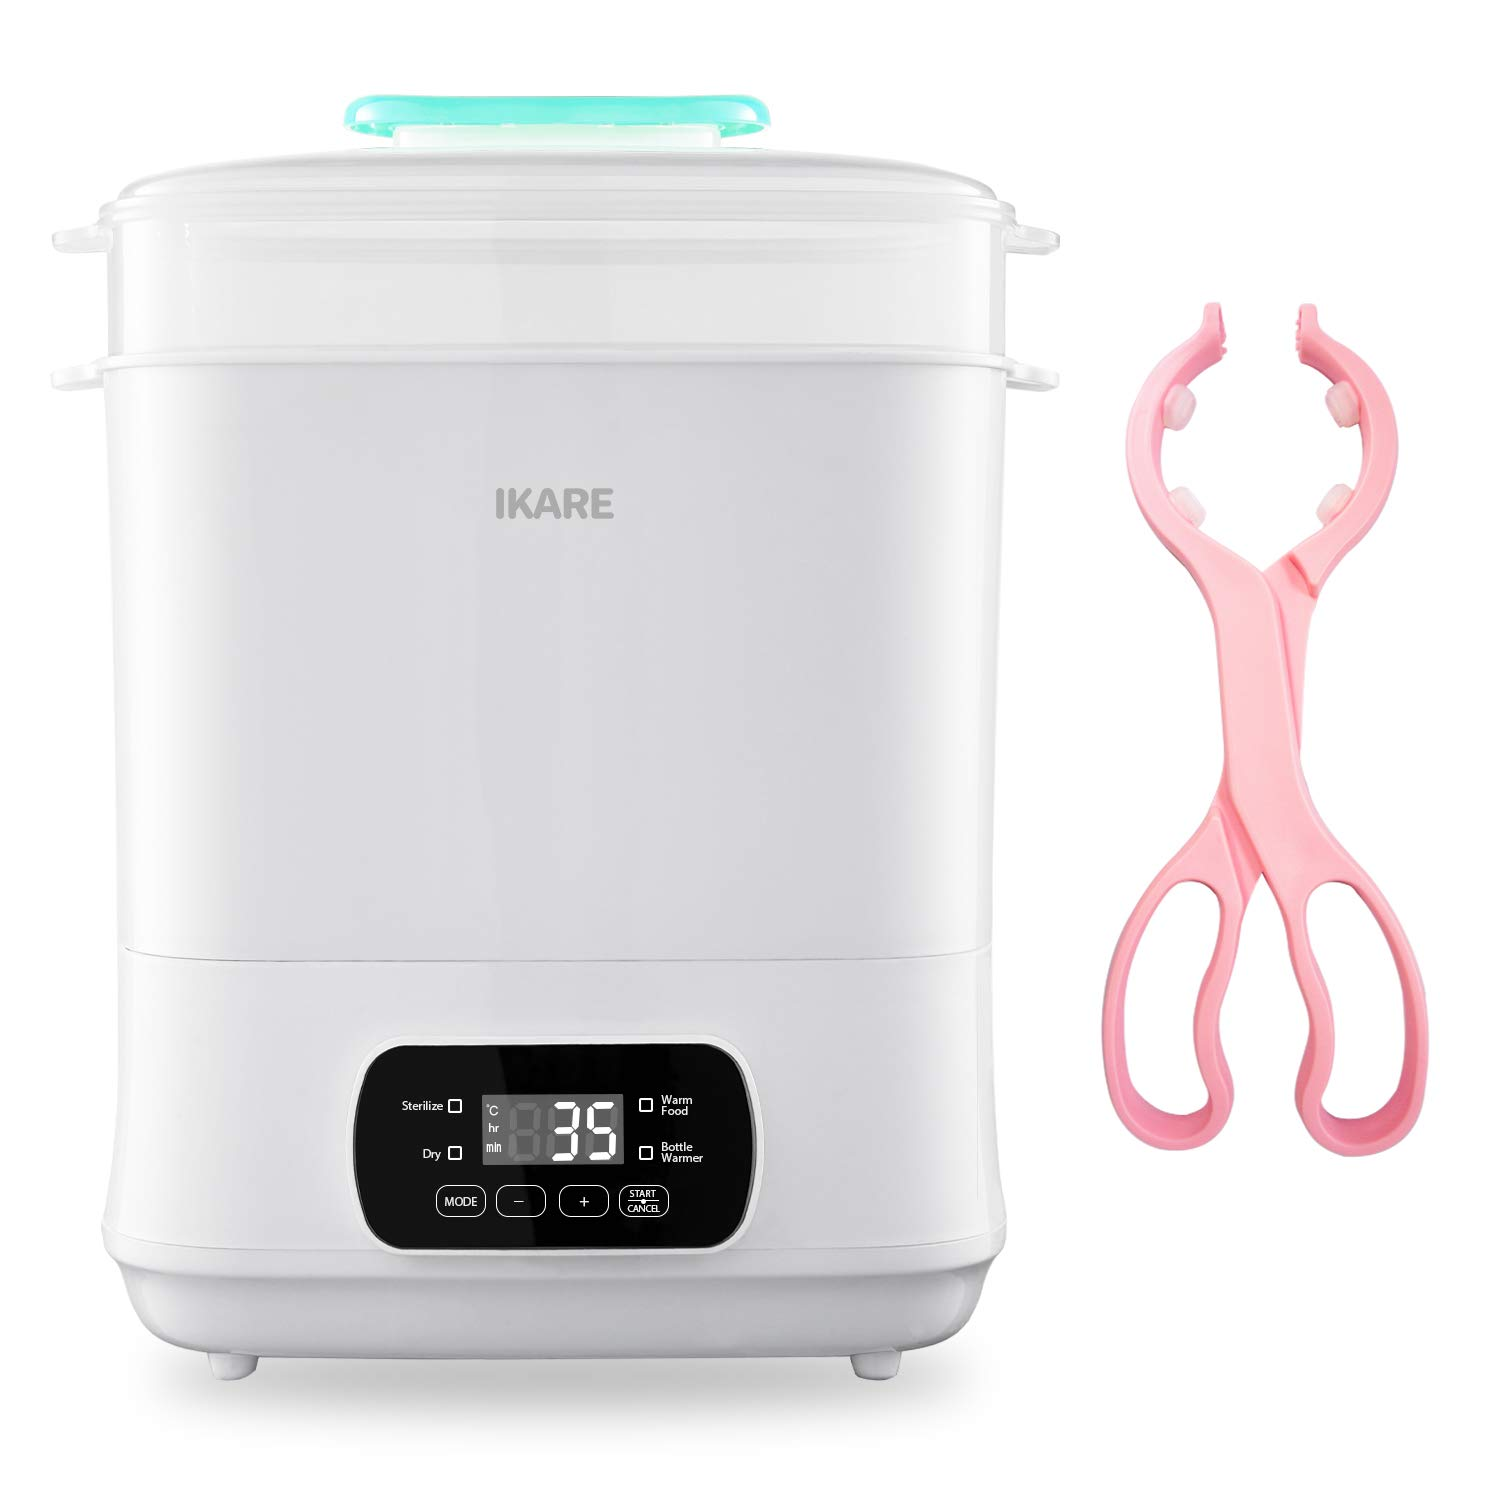 IKARE Baby Bottle Electric Steam Steri-lizer Dryer Machine 600W, Milk Warmer W/LED Monitor, Temperature Control & Auto Power-Off, 5-in-1 for Sterili-zing, Drying, Warming Breastmilk, Formula, Food